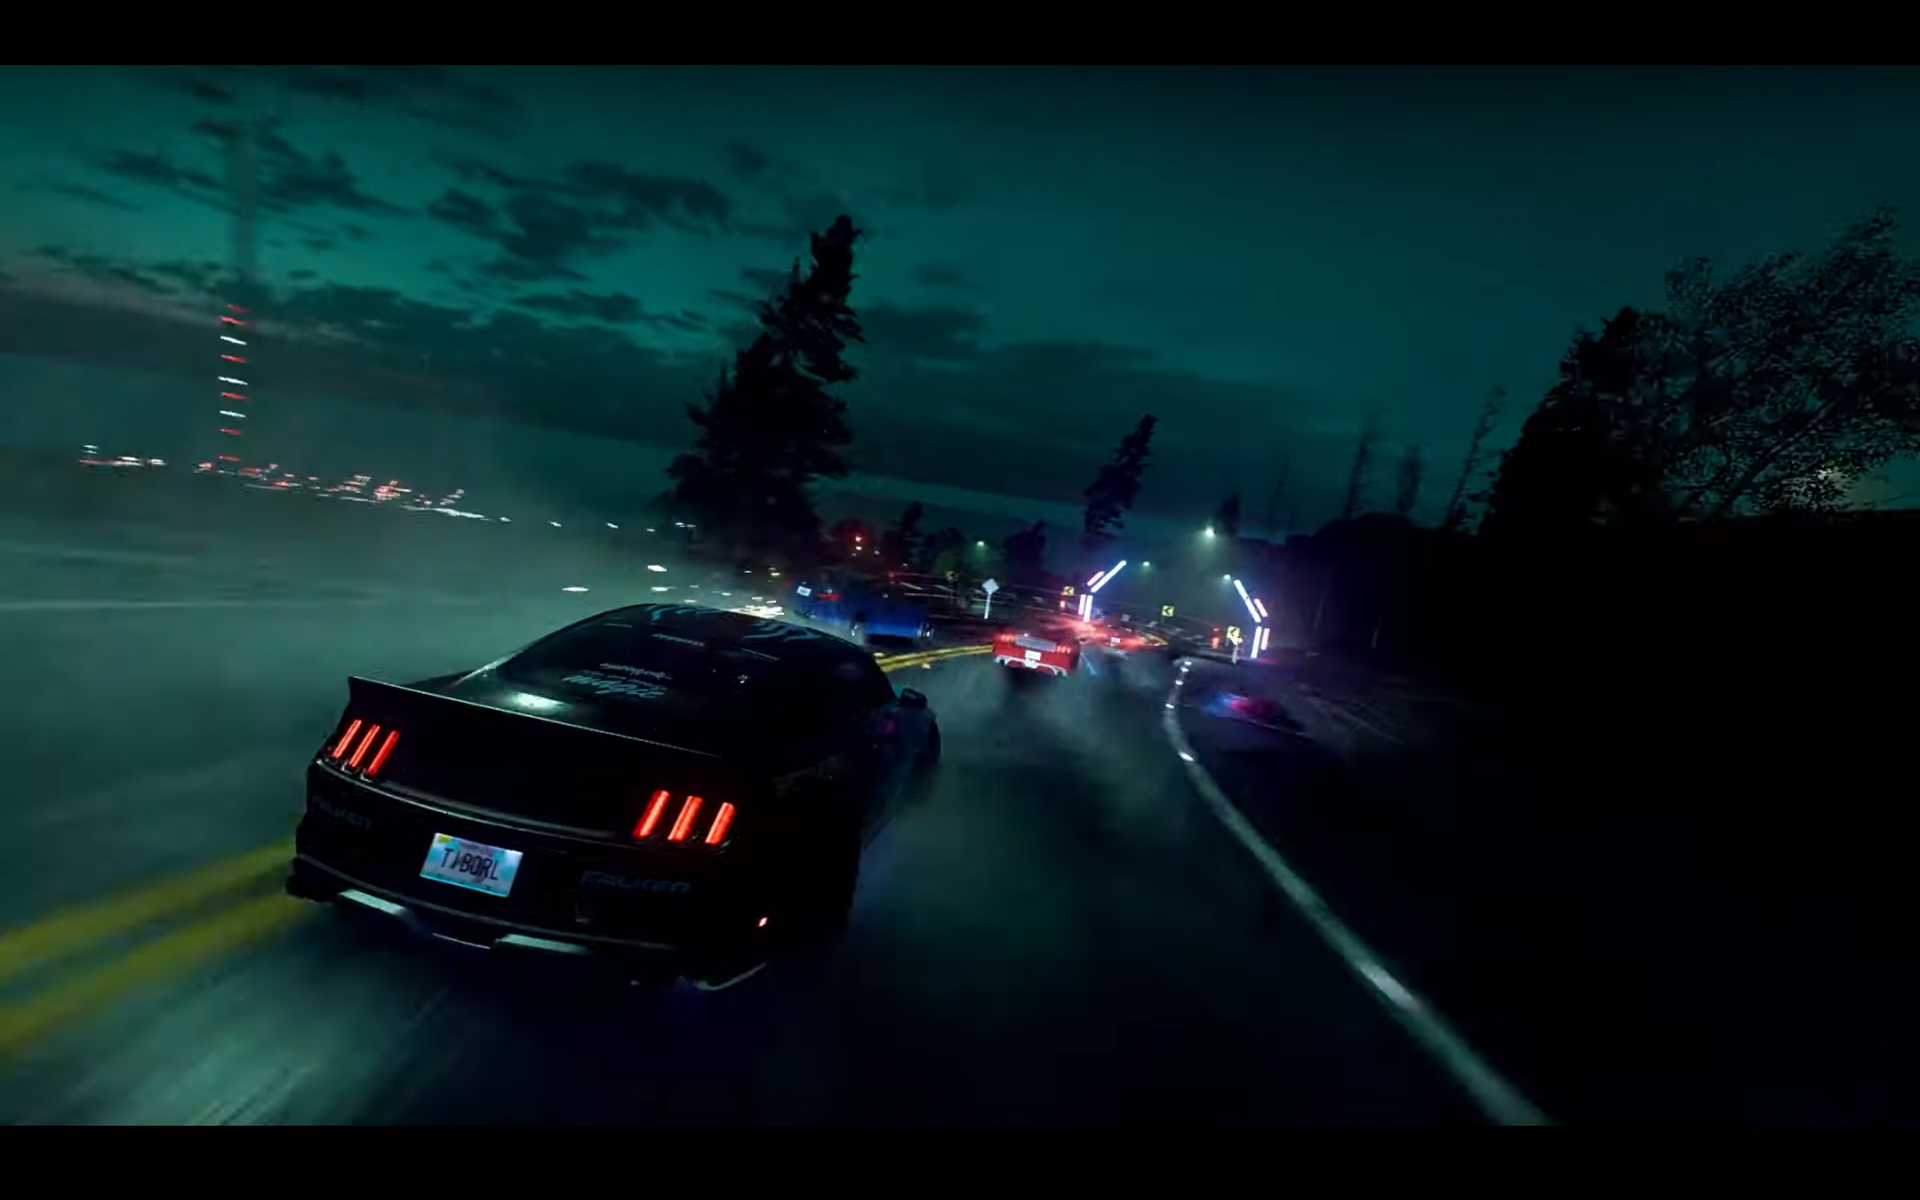 NFS-Heat-2019-screen-trailer-Mustang-night-underground-racing